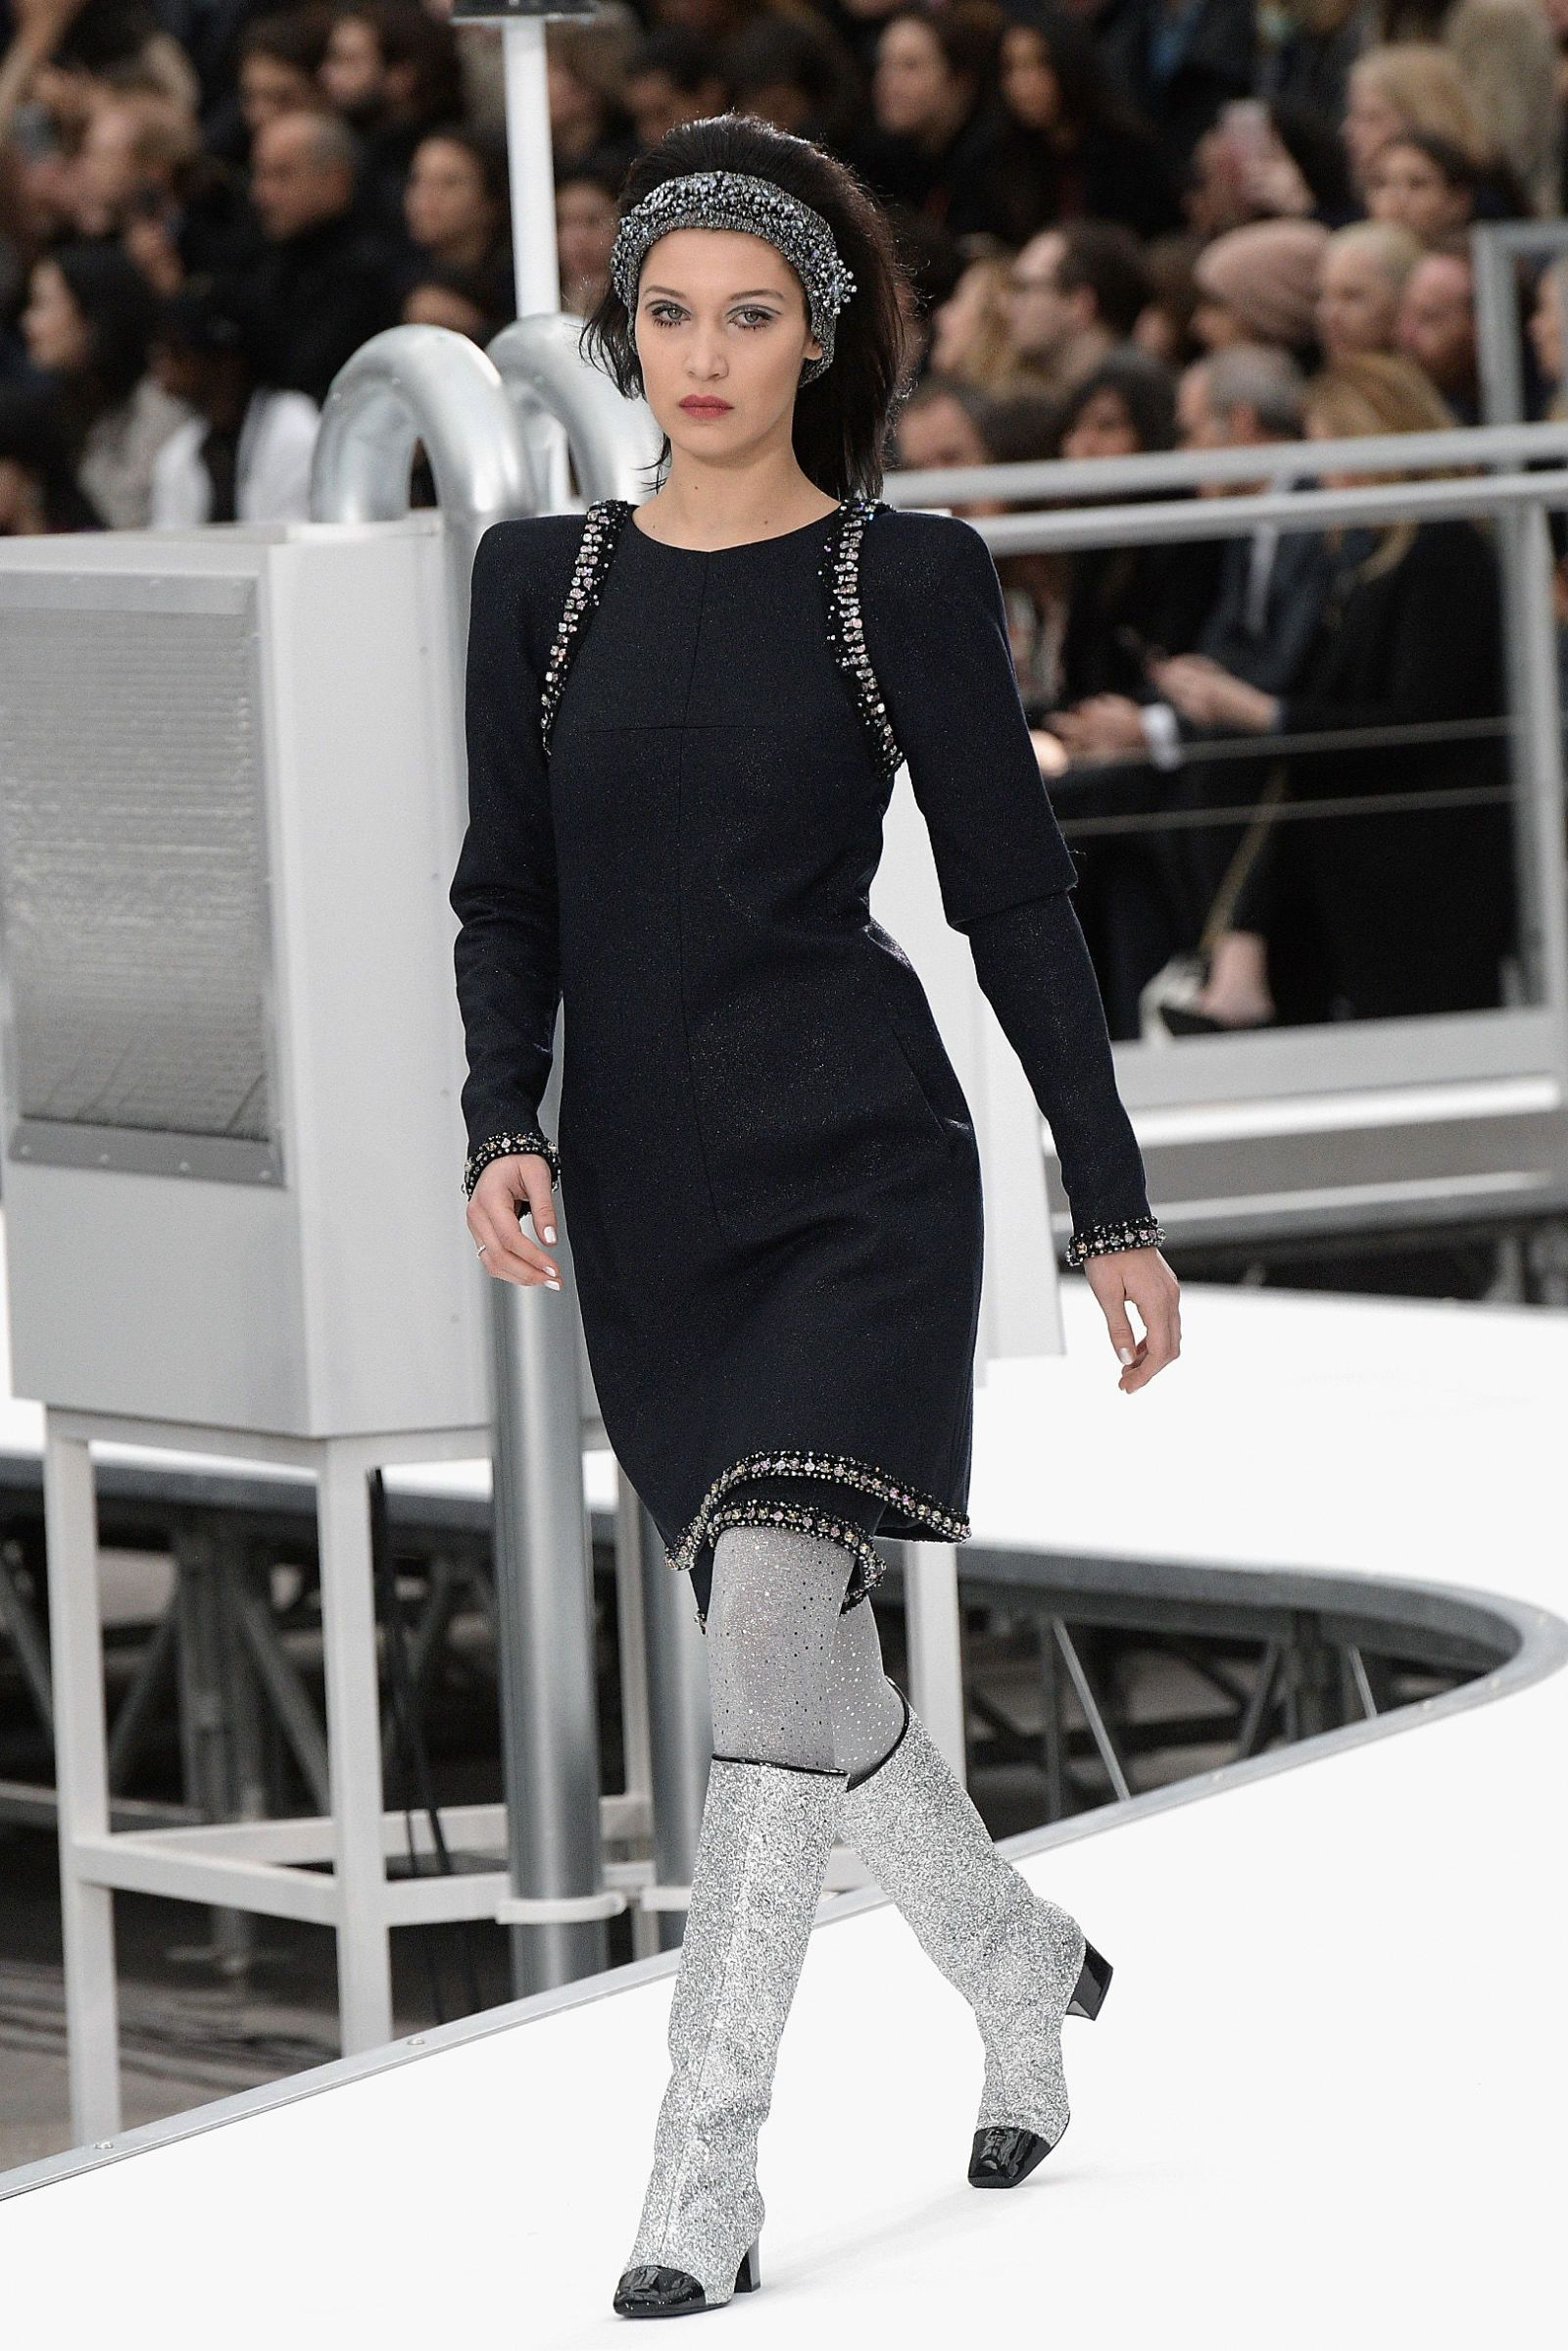 Chanel Blasts Off Into Outer Space